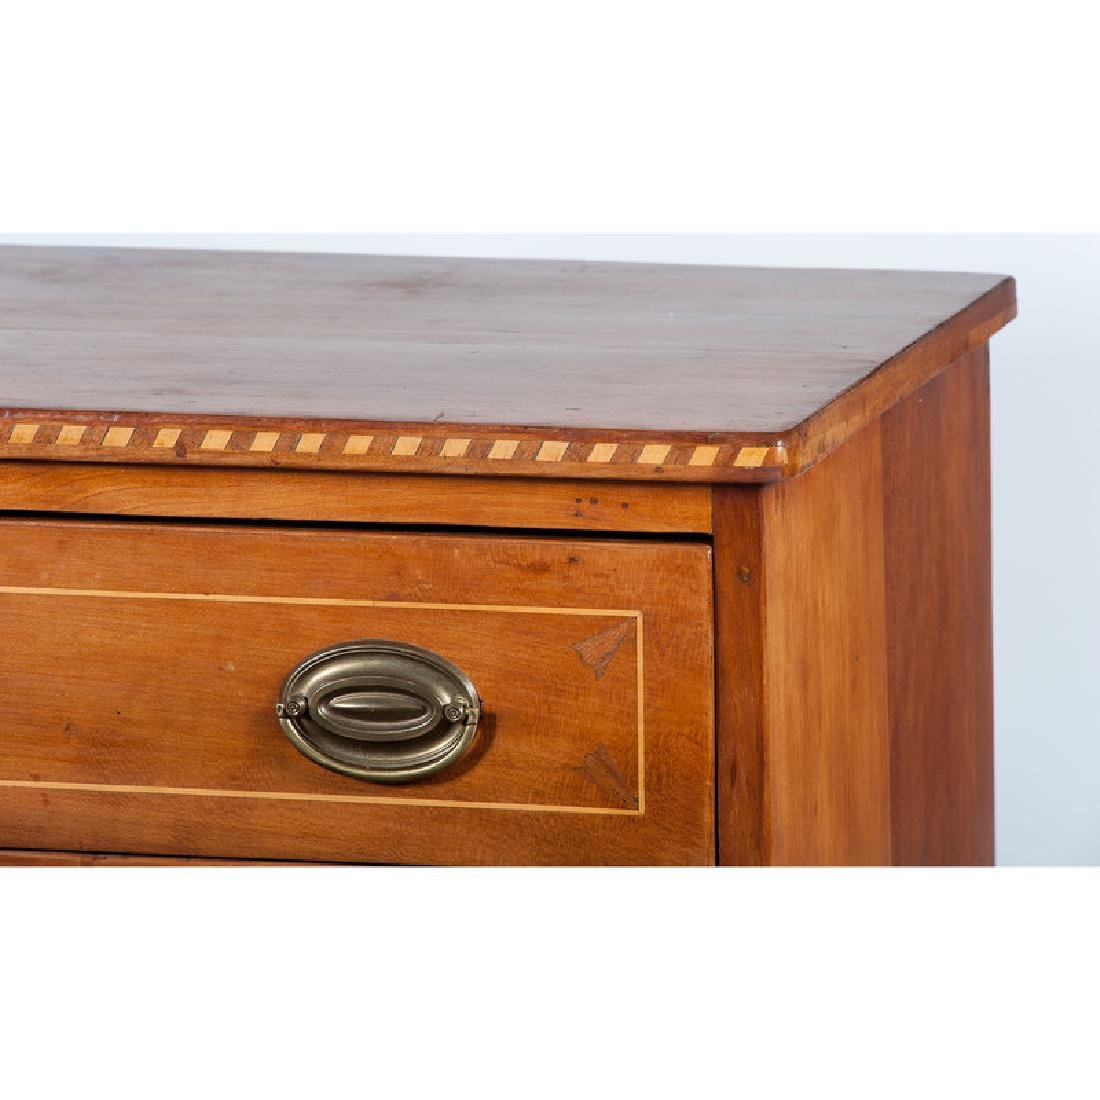 Federal Inlaid Chest of Drawers - 3